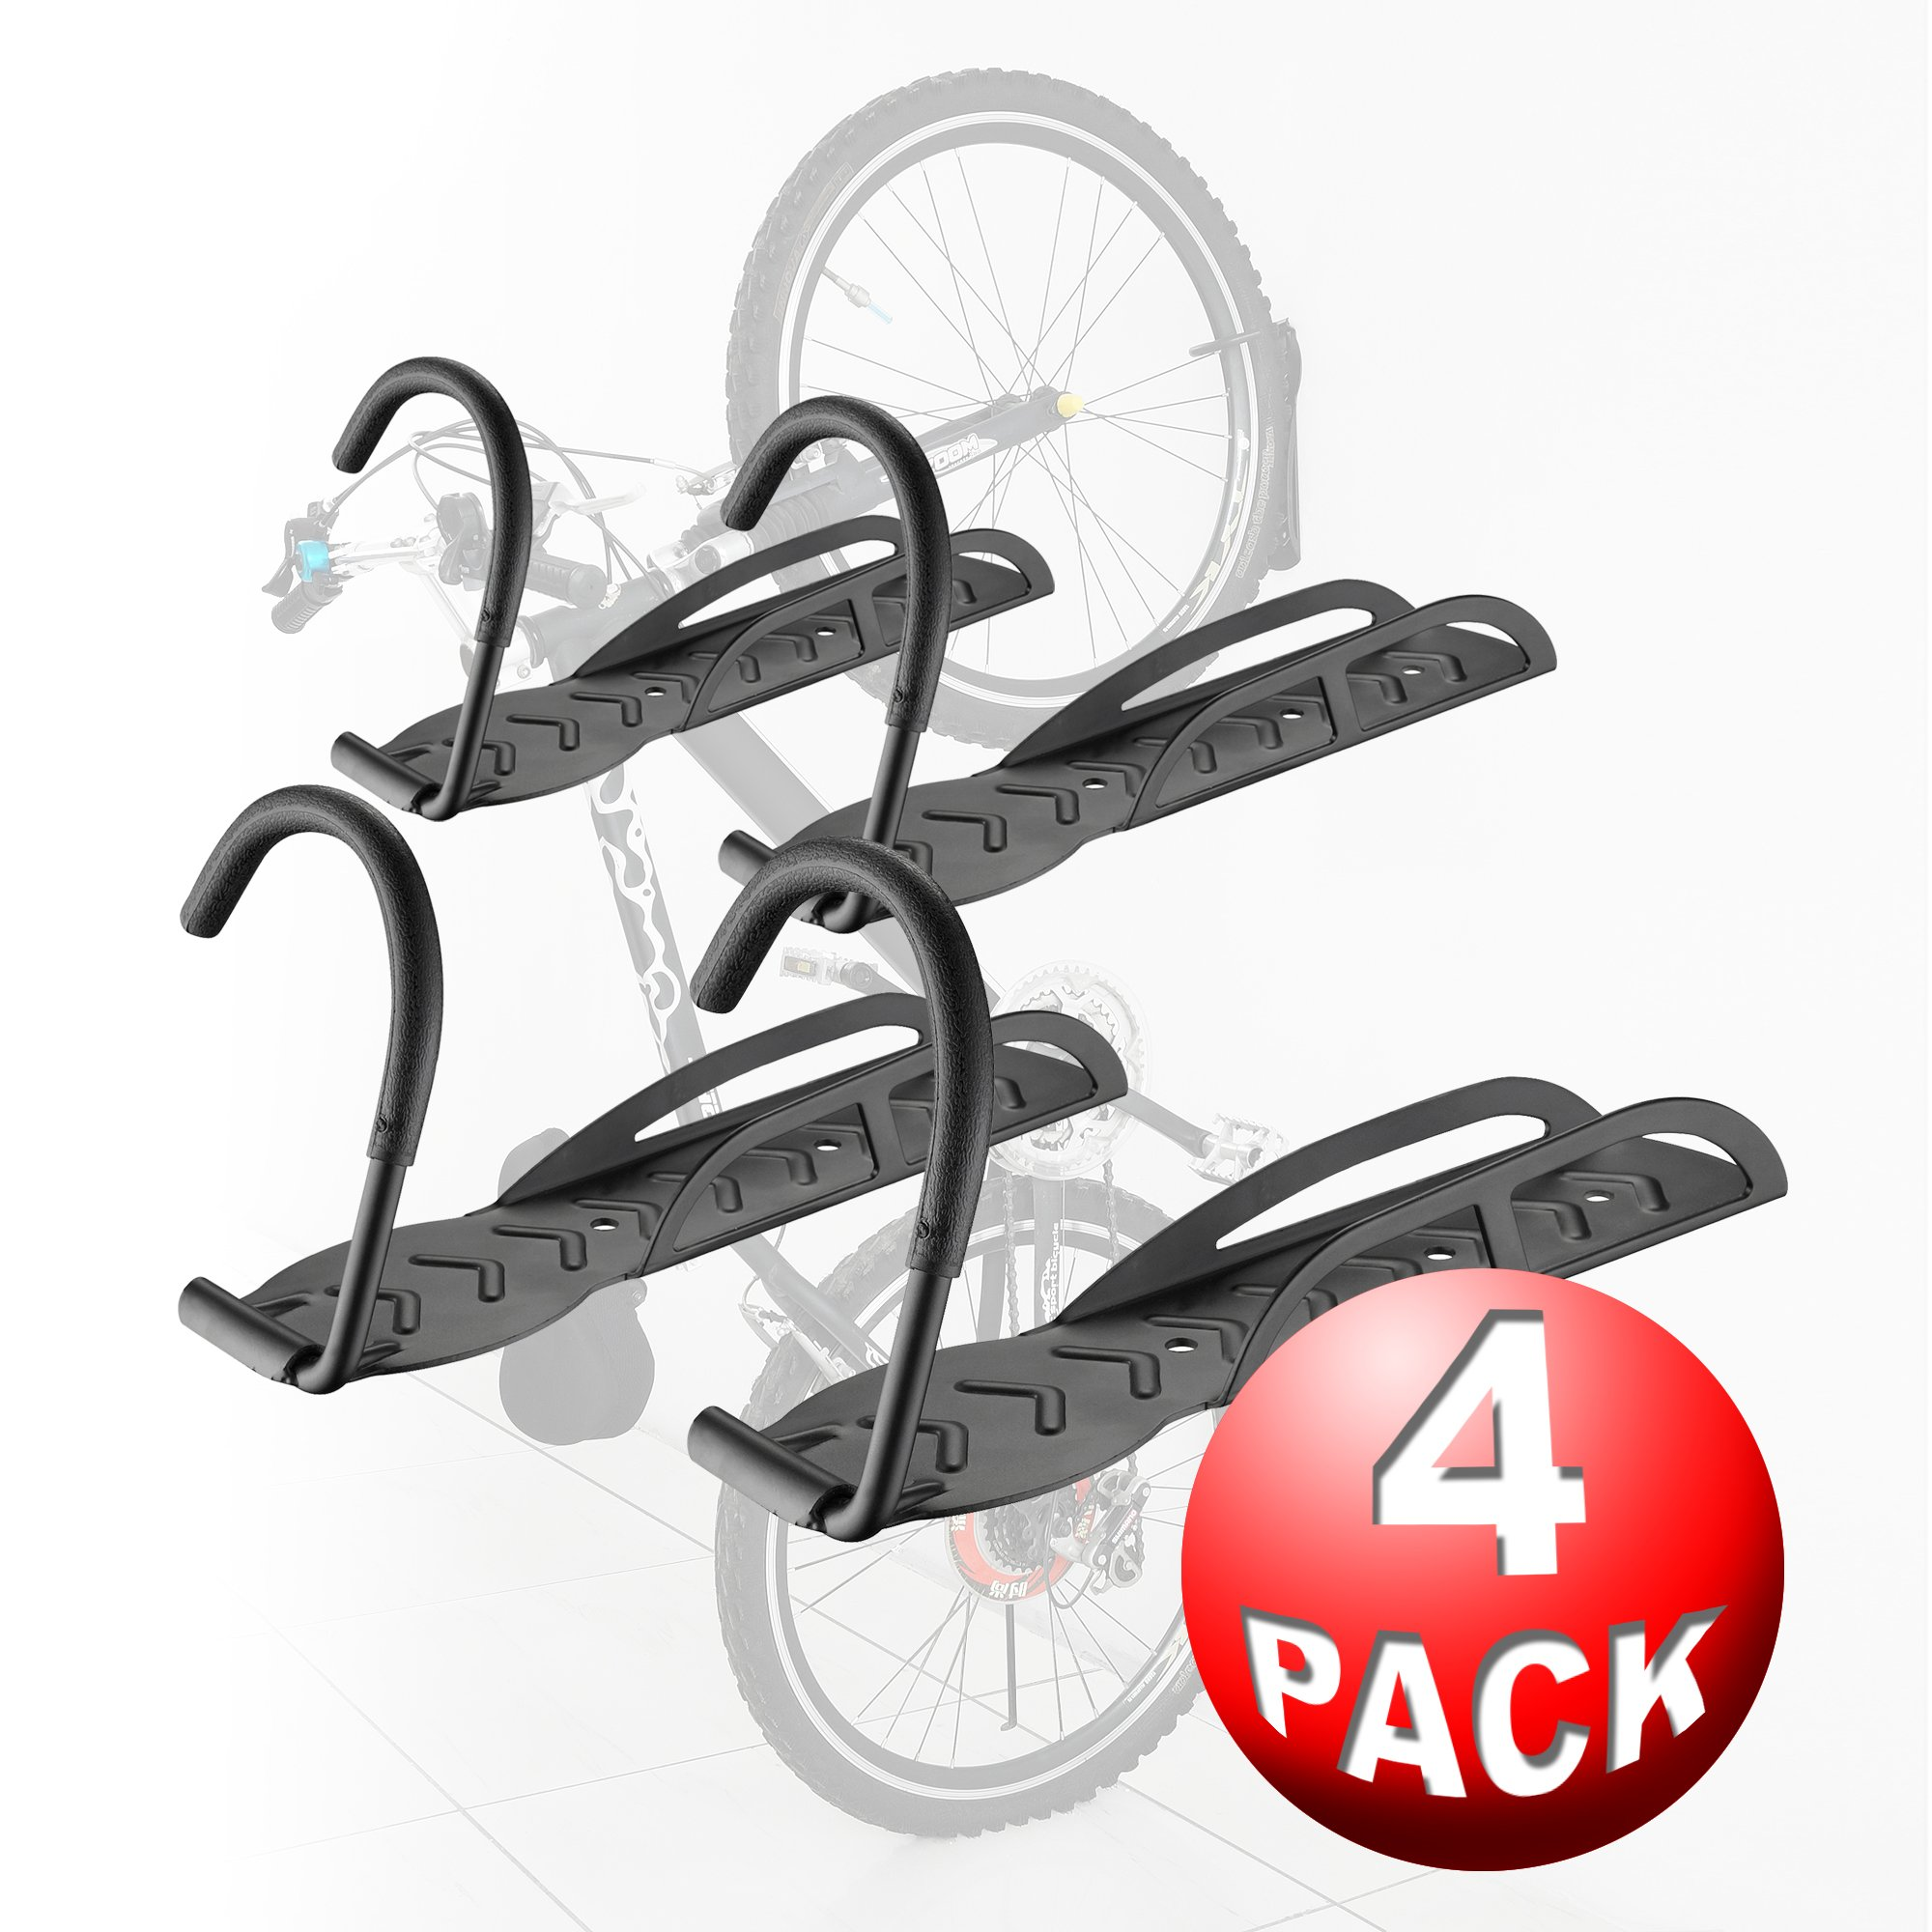 Bike Lane Products Bicycle Wall Hanger 4 Pack Bike Storage System For Garage or Shed Vertical Bicycle Storage